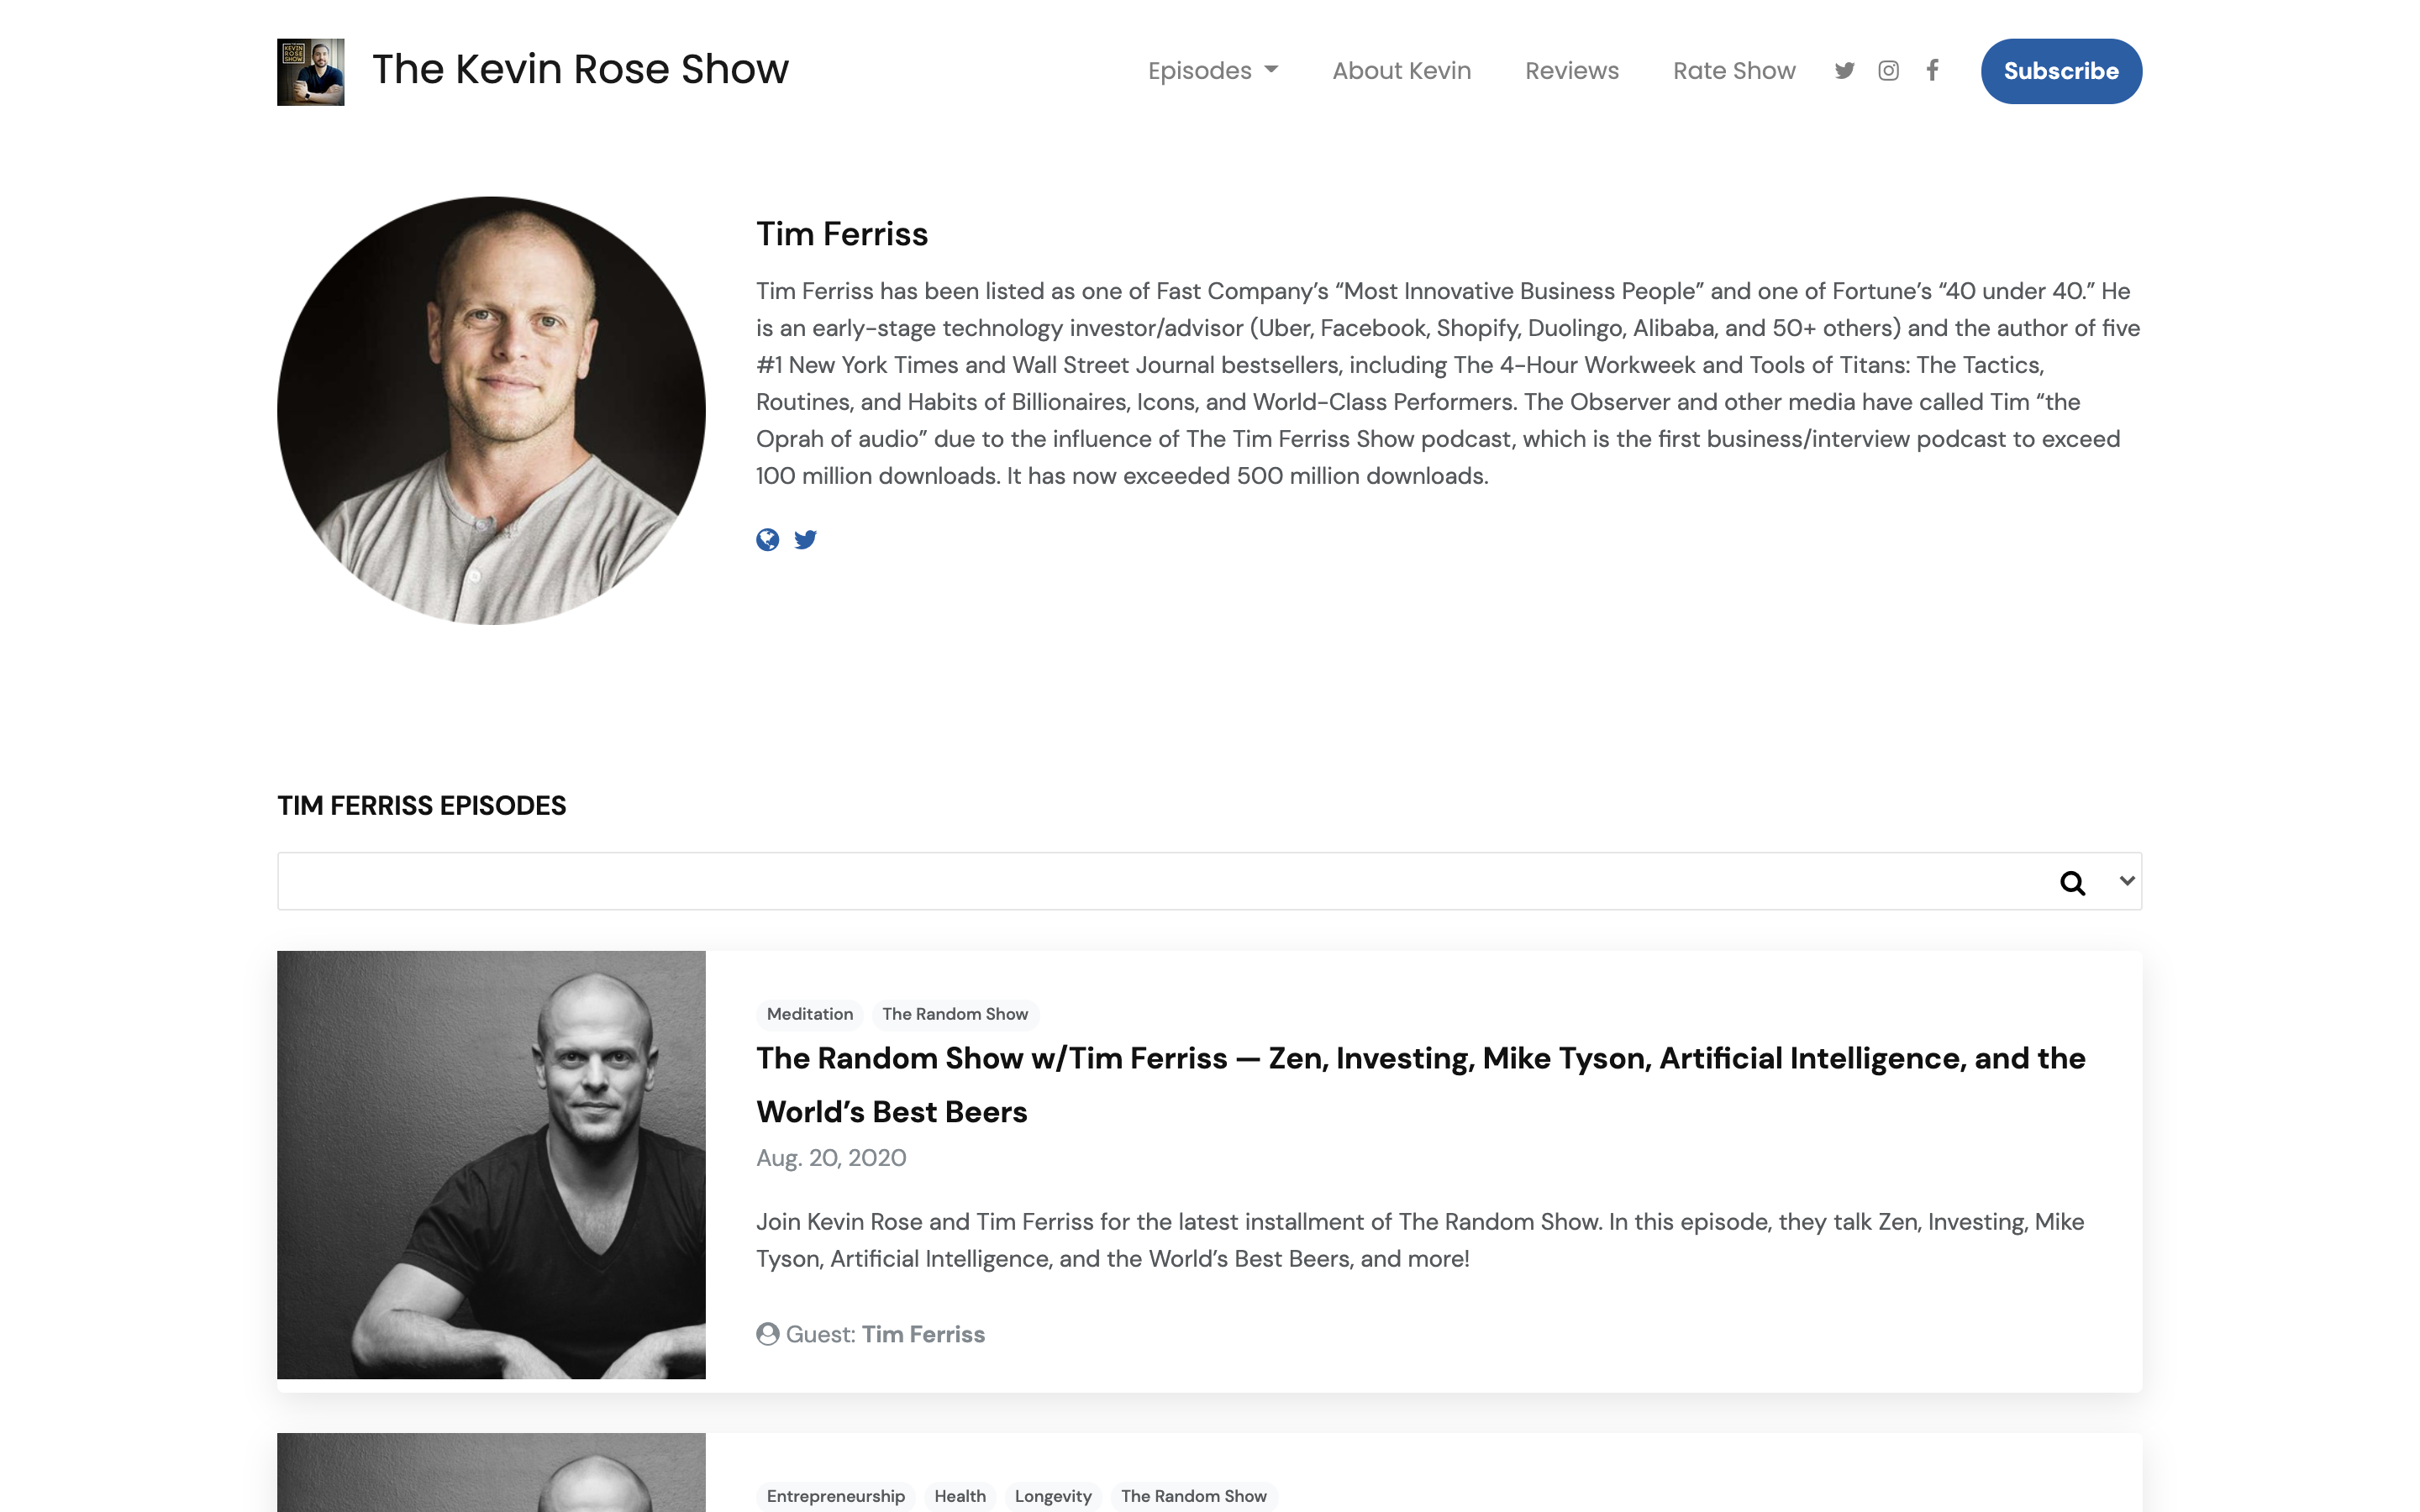 Image from Introducing Guest Profiles